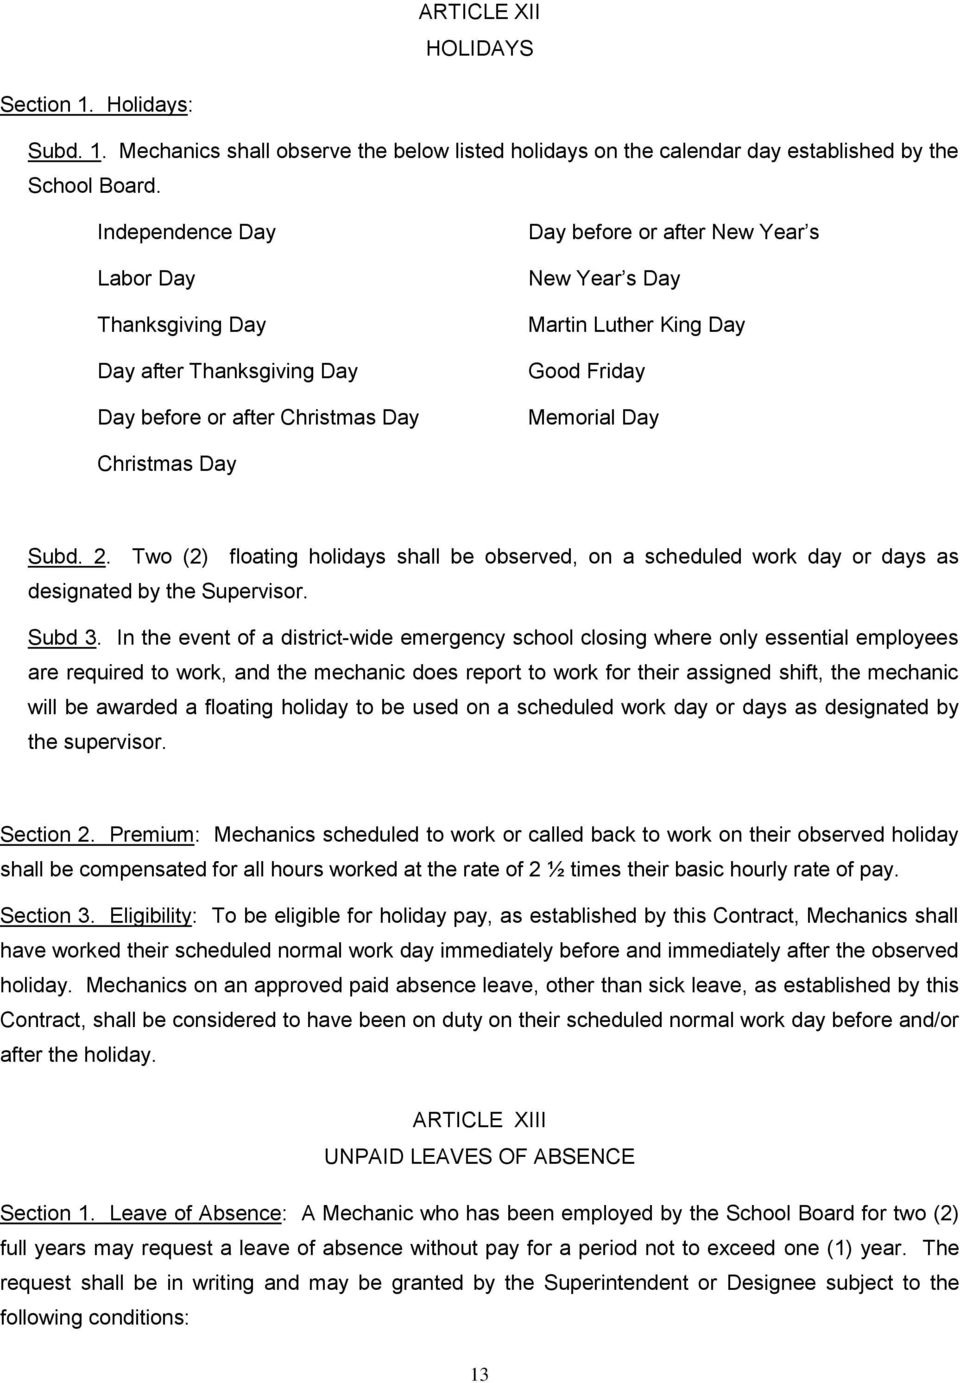 Christmas Day Subd. 2. Two (2) floating holidays shall be observed, on a scheduled work day or days as designated by the Supervisor. Subd 3.